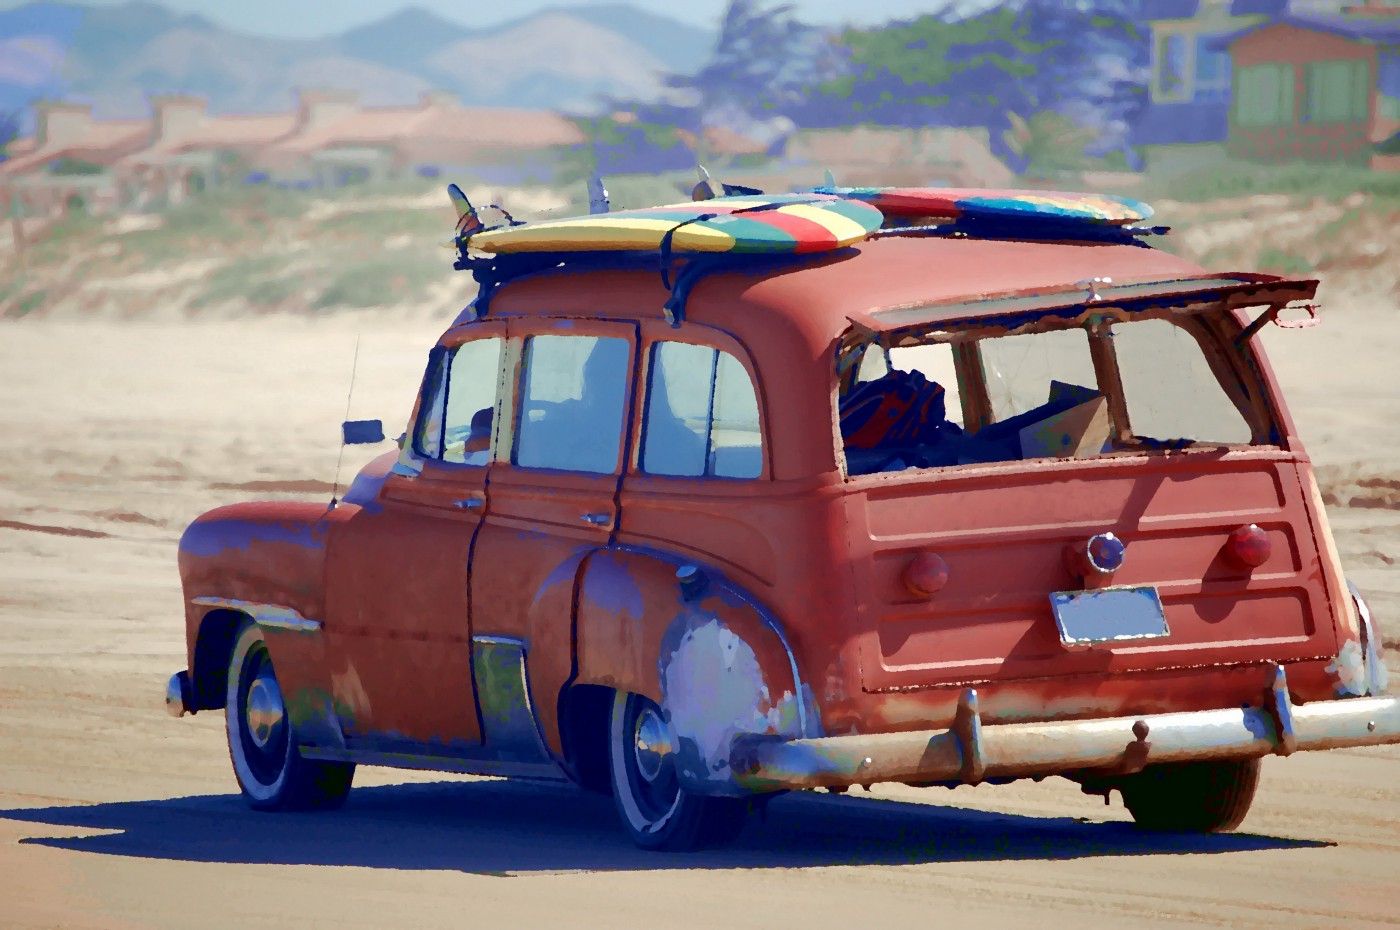 An old jalopy that is carrying surf boards to the beach even after all these years.